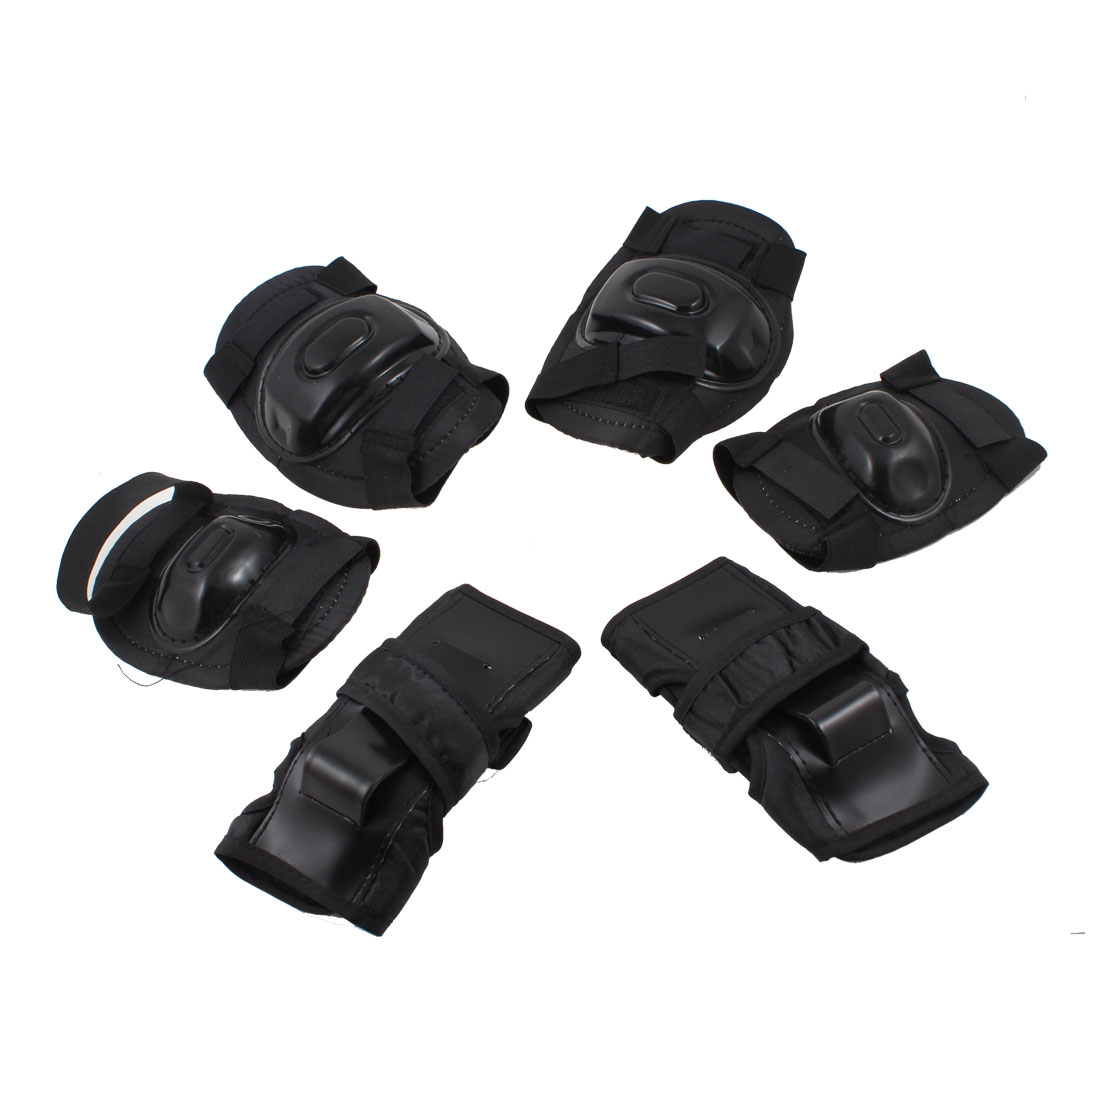 Kids 3 Pairs Black Cycling Skating Elbow Knee Palm Support Protectors Set